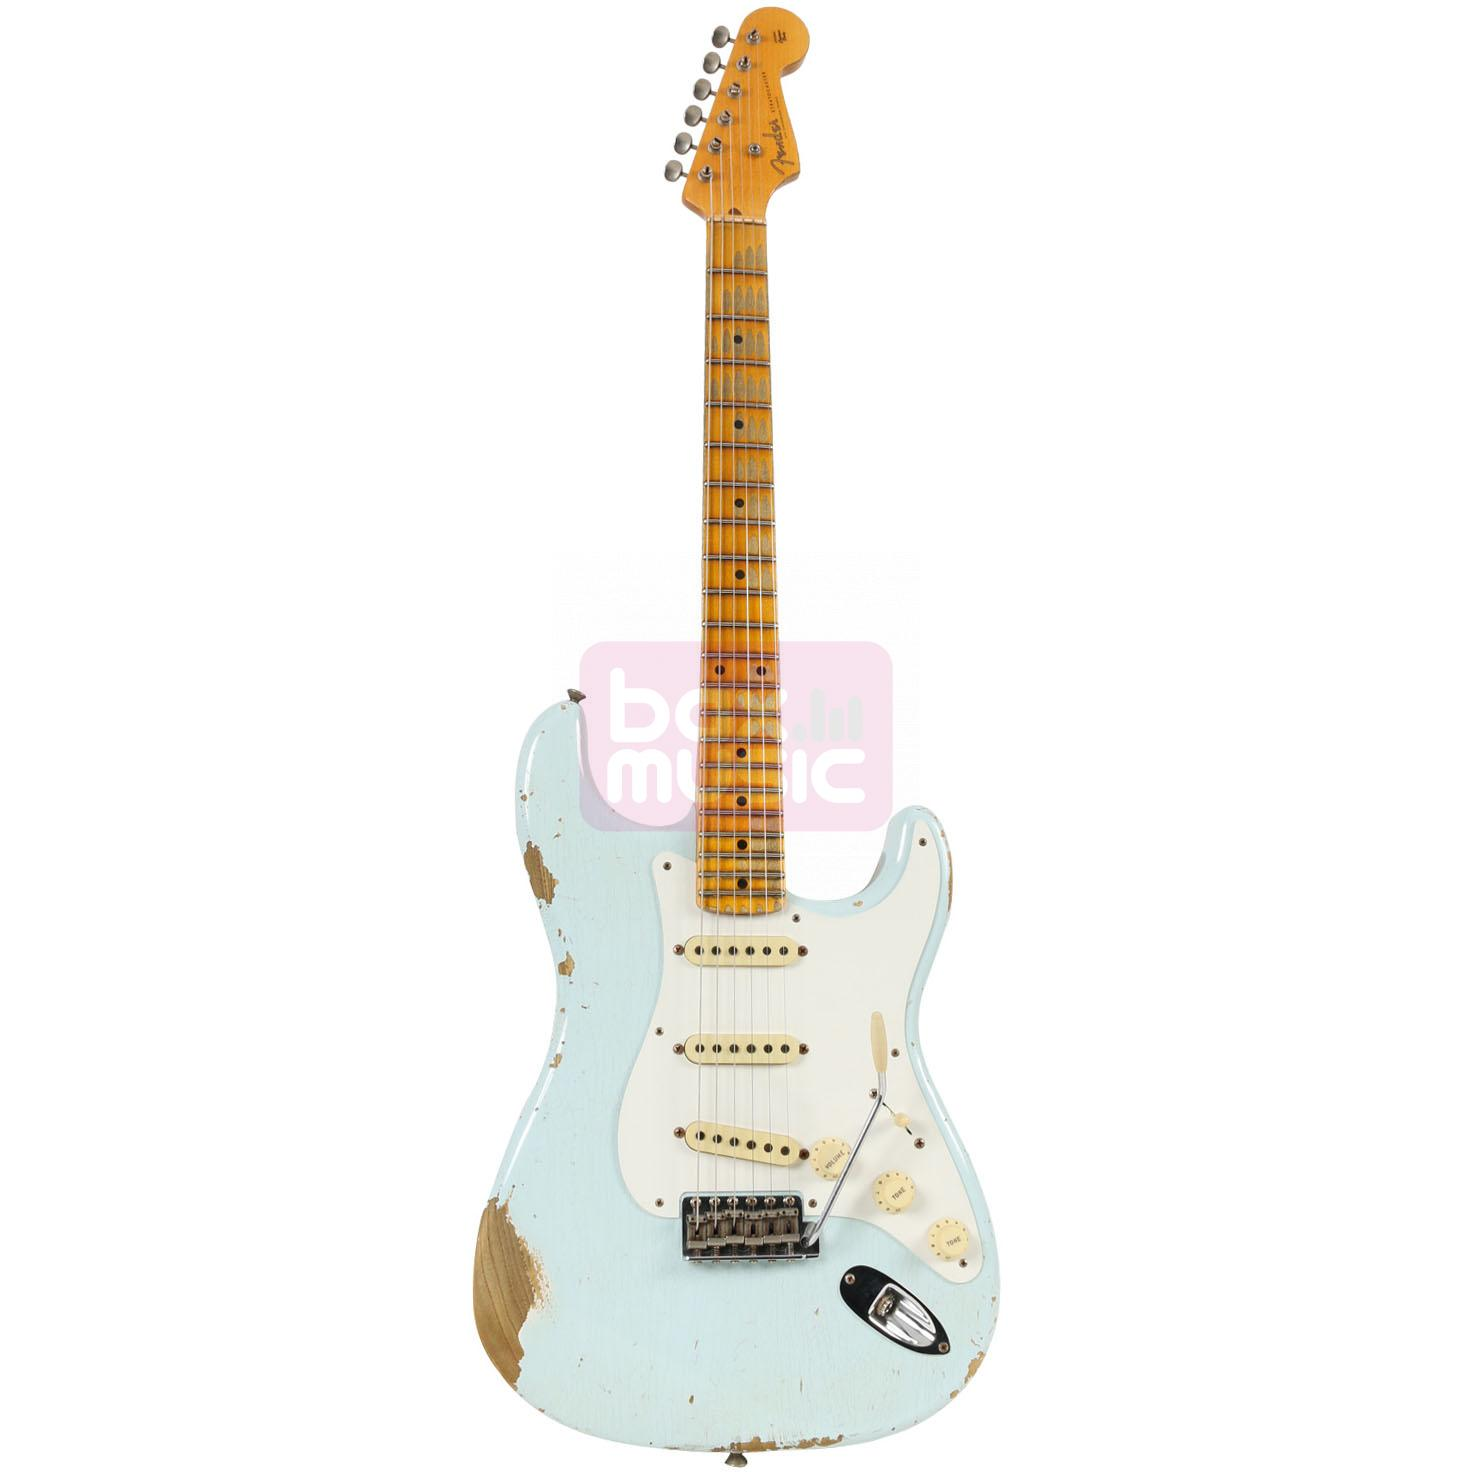 Fender Custom Shop Limited 1956 Relic Strat Faded Sonic Blue